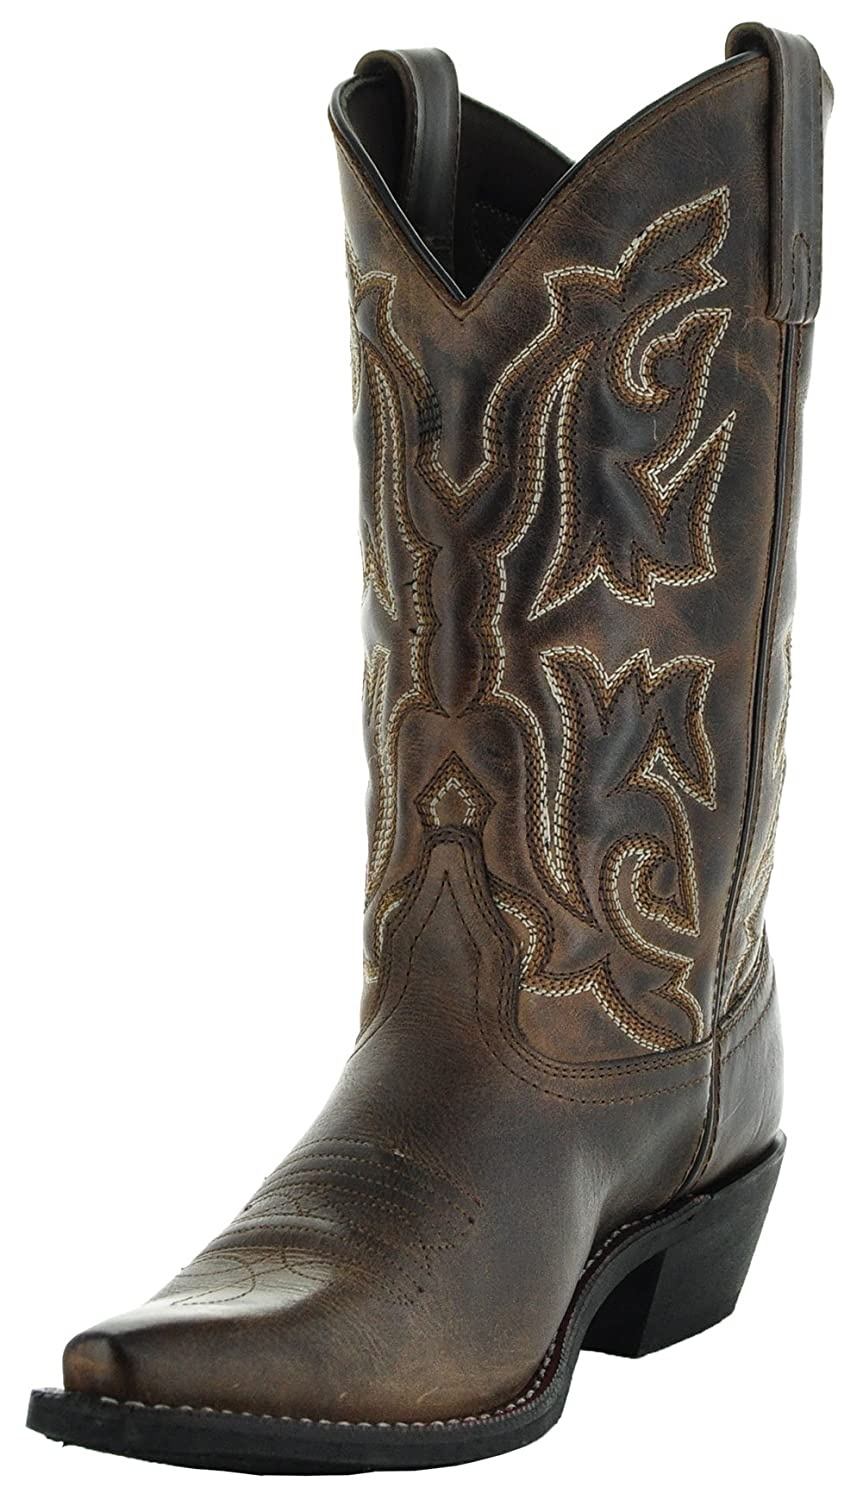 Soto Boots Women's Snip Toe B0792FYMZC Leather Cowgirl Boots M3002 B0792FYMZC Toe 7 B(M) US|Brown 8384b4